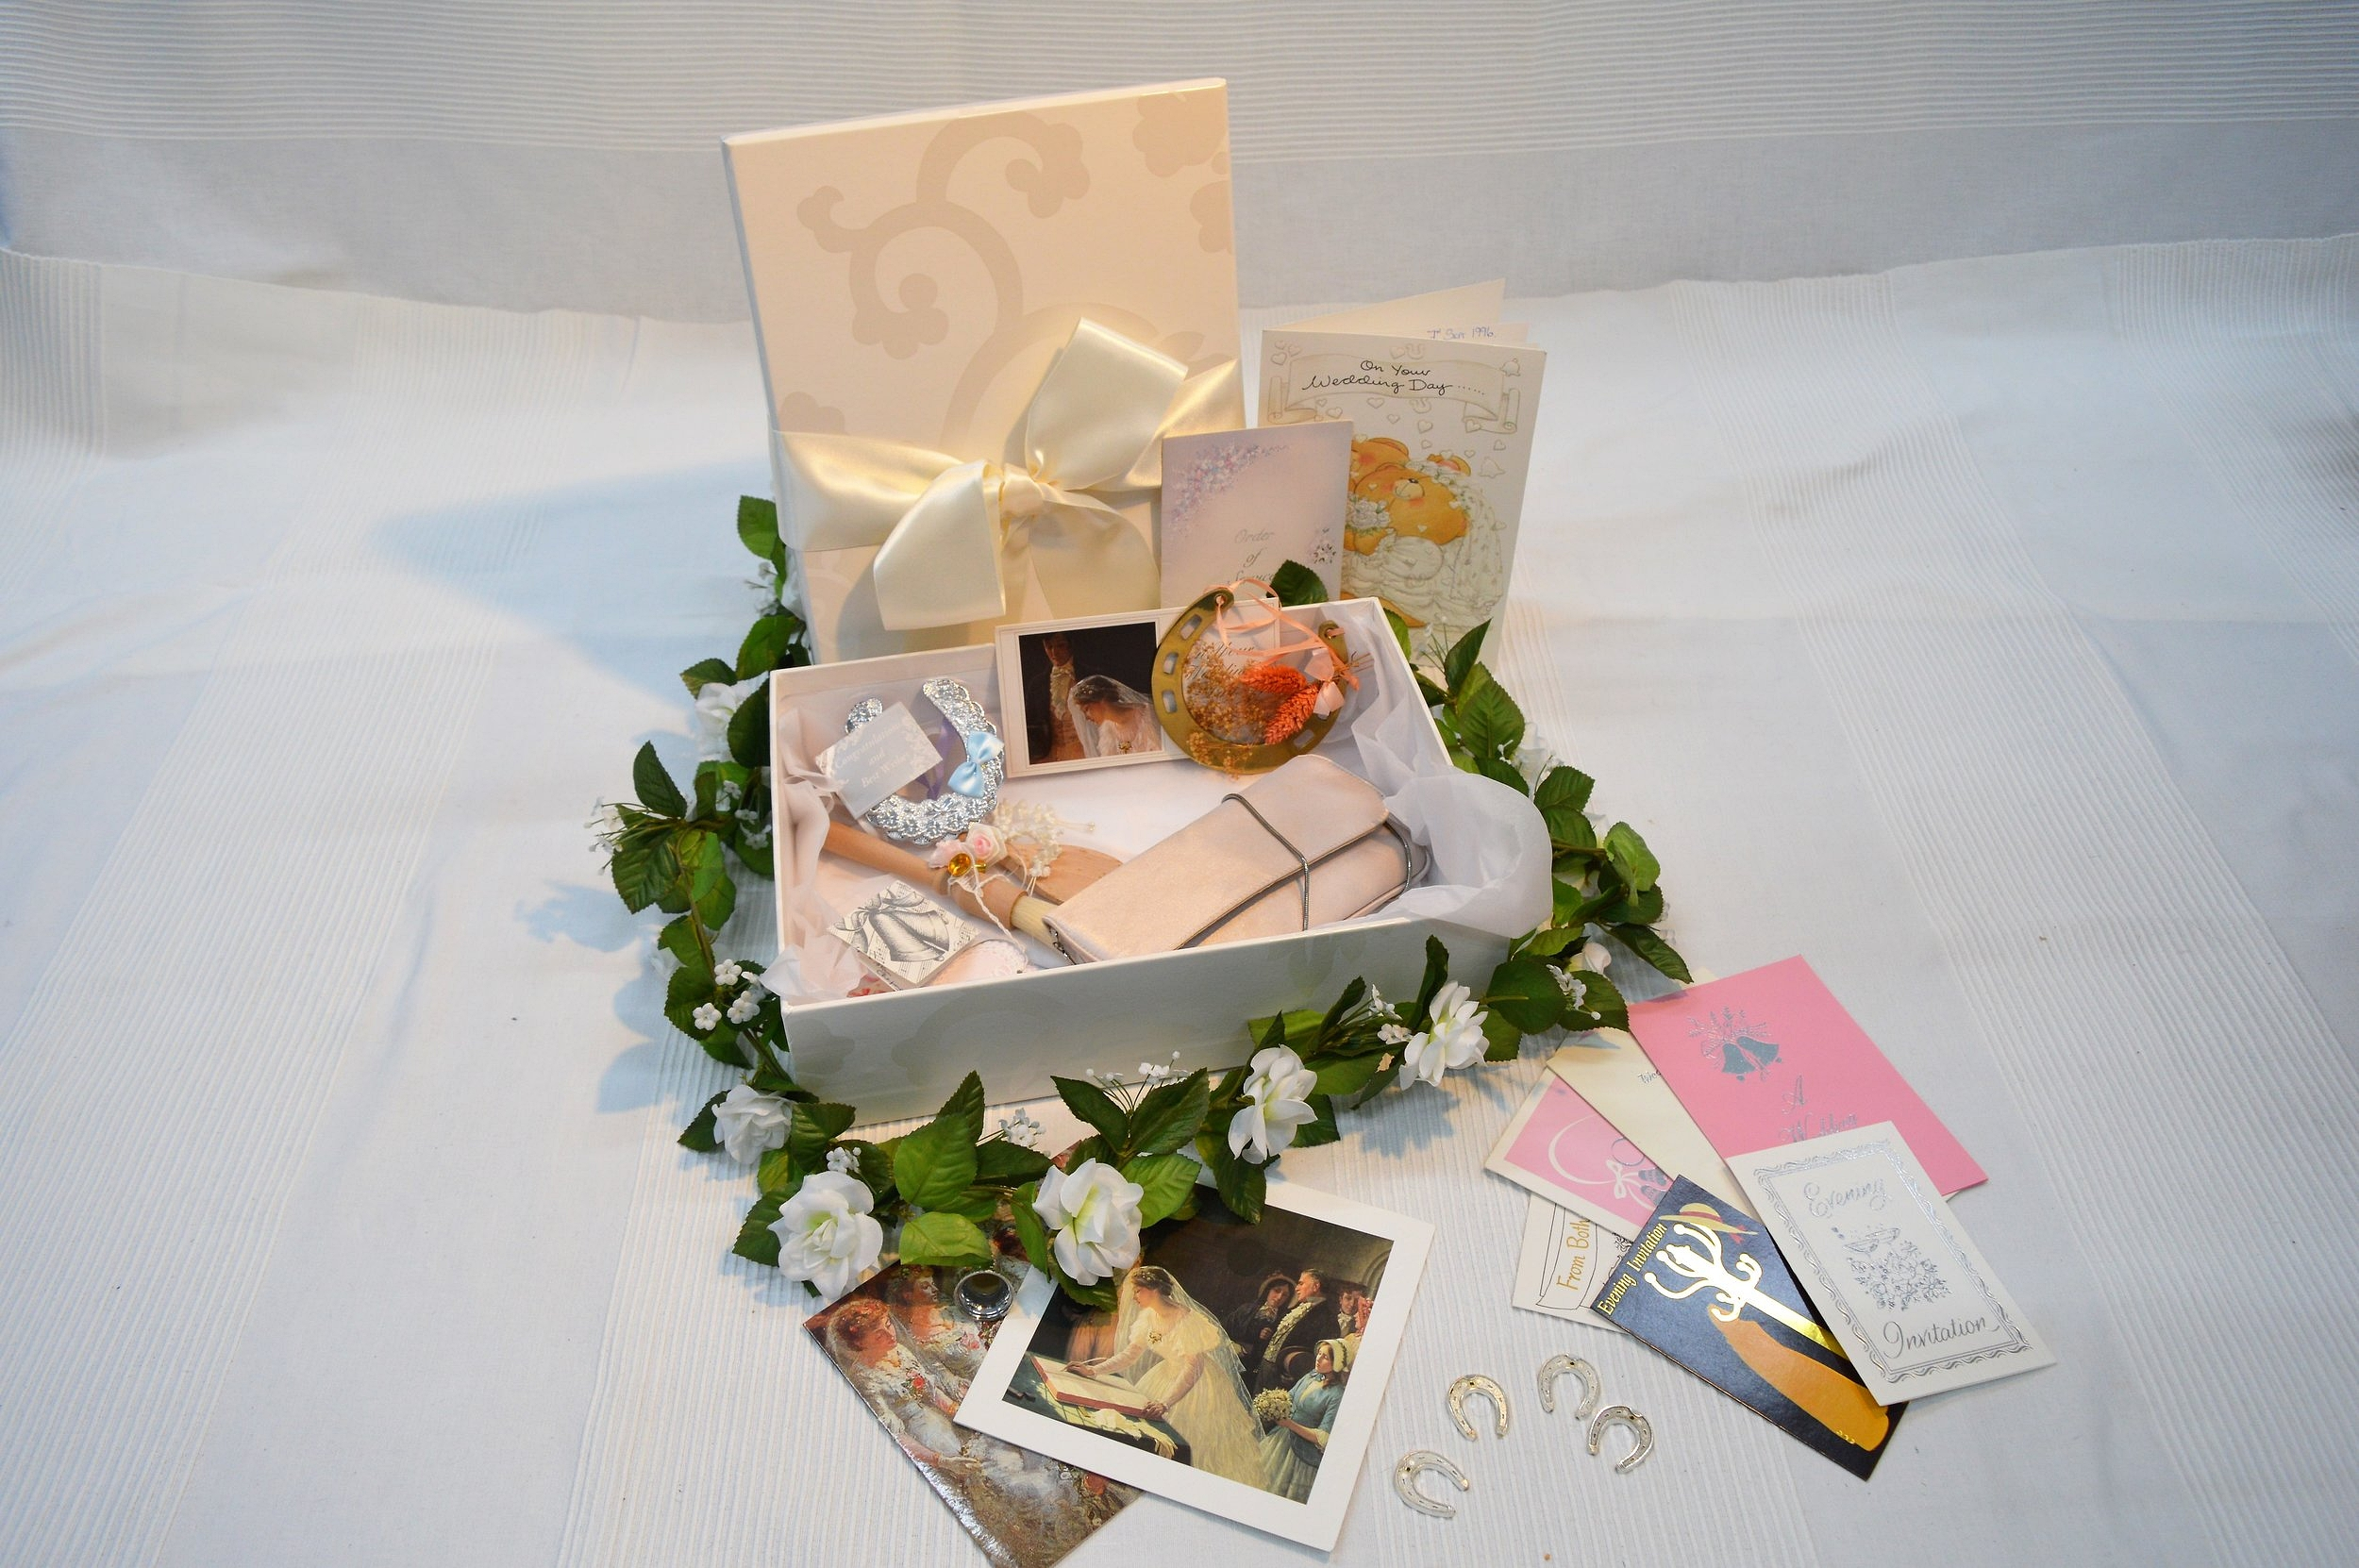 Our smallest box is suitable as a keepsake box for those cherished items that cannot be stored with your dress.